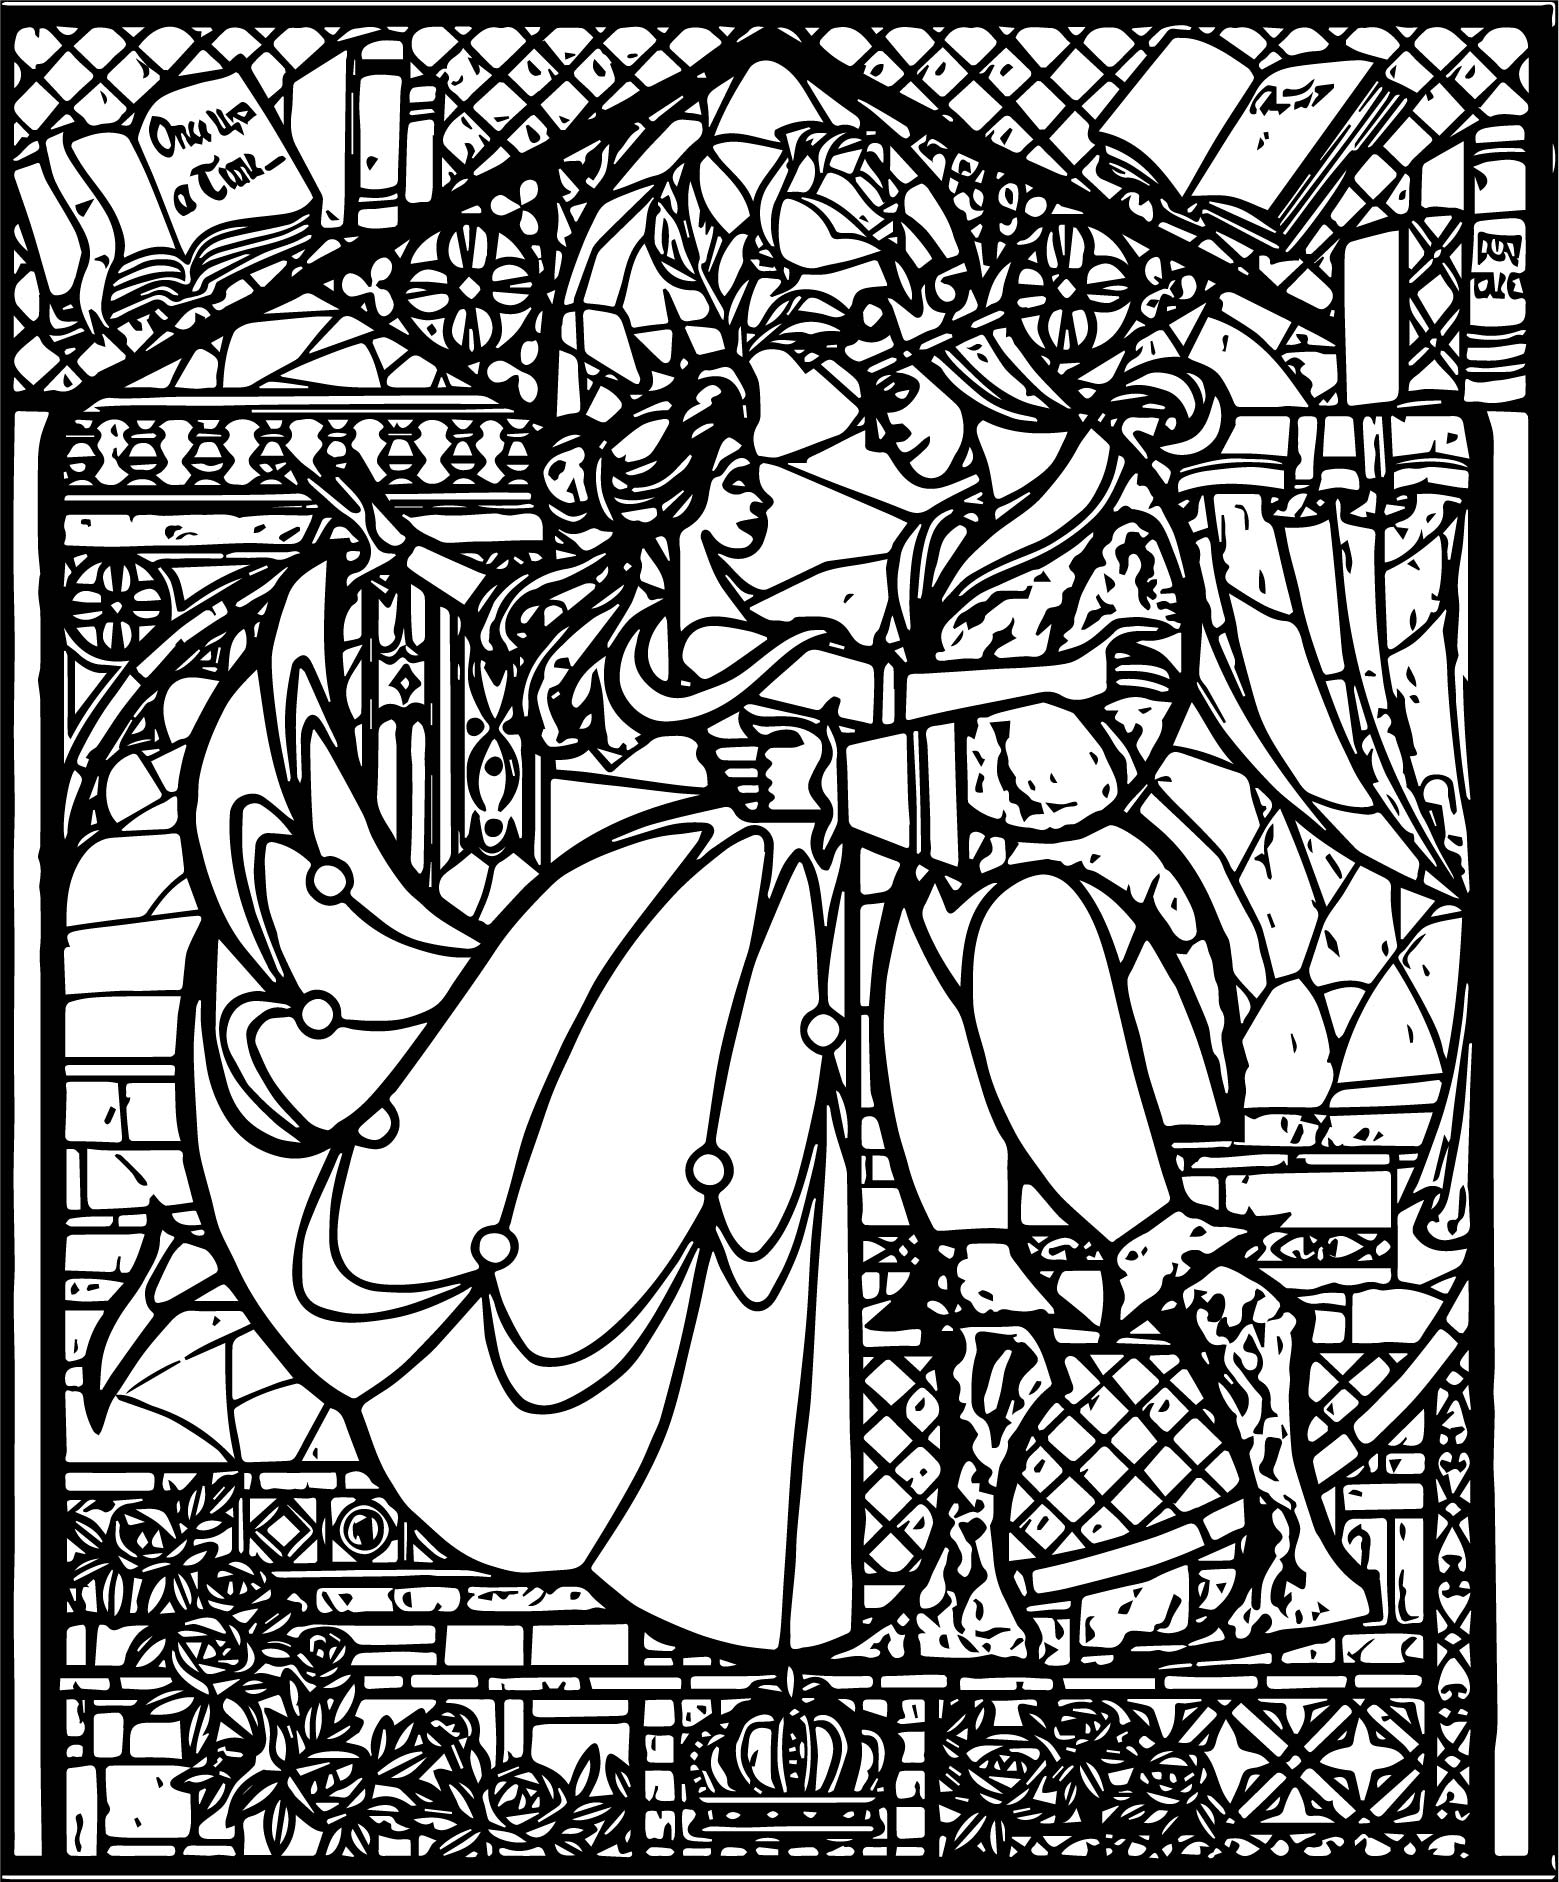 stained glass coloring page medieval stained glass coloring pages download and print glass coloring stained page